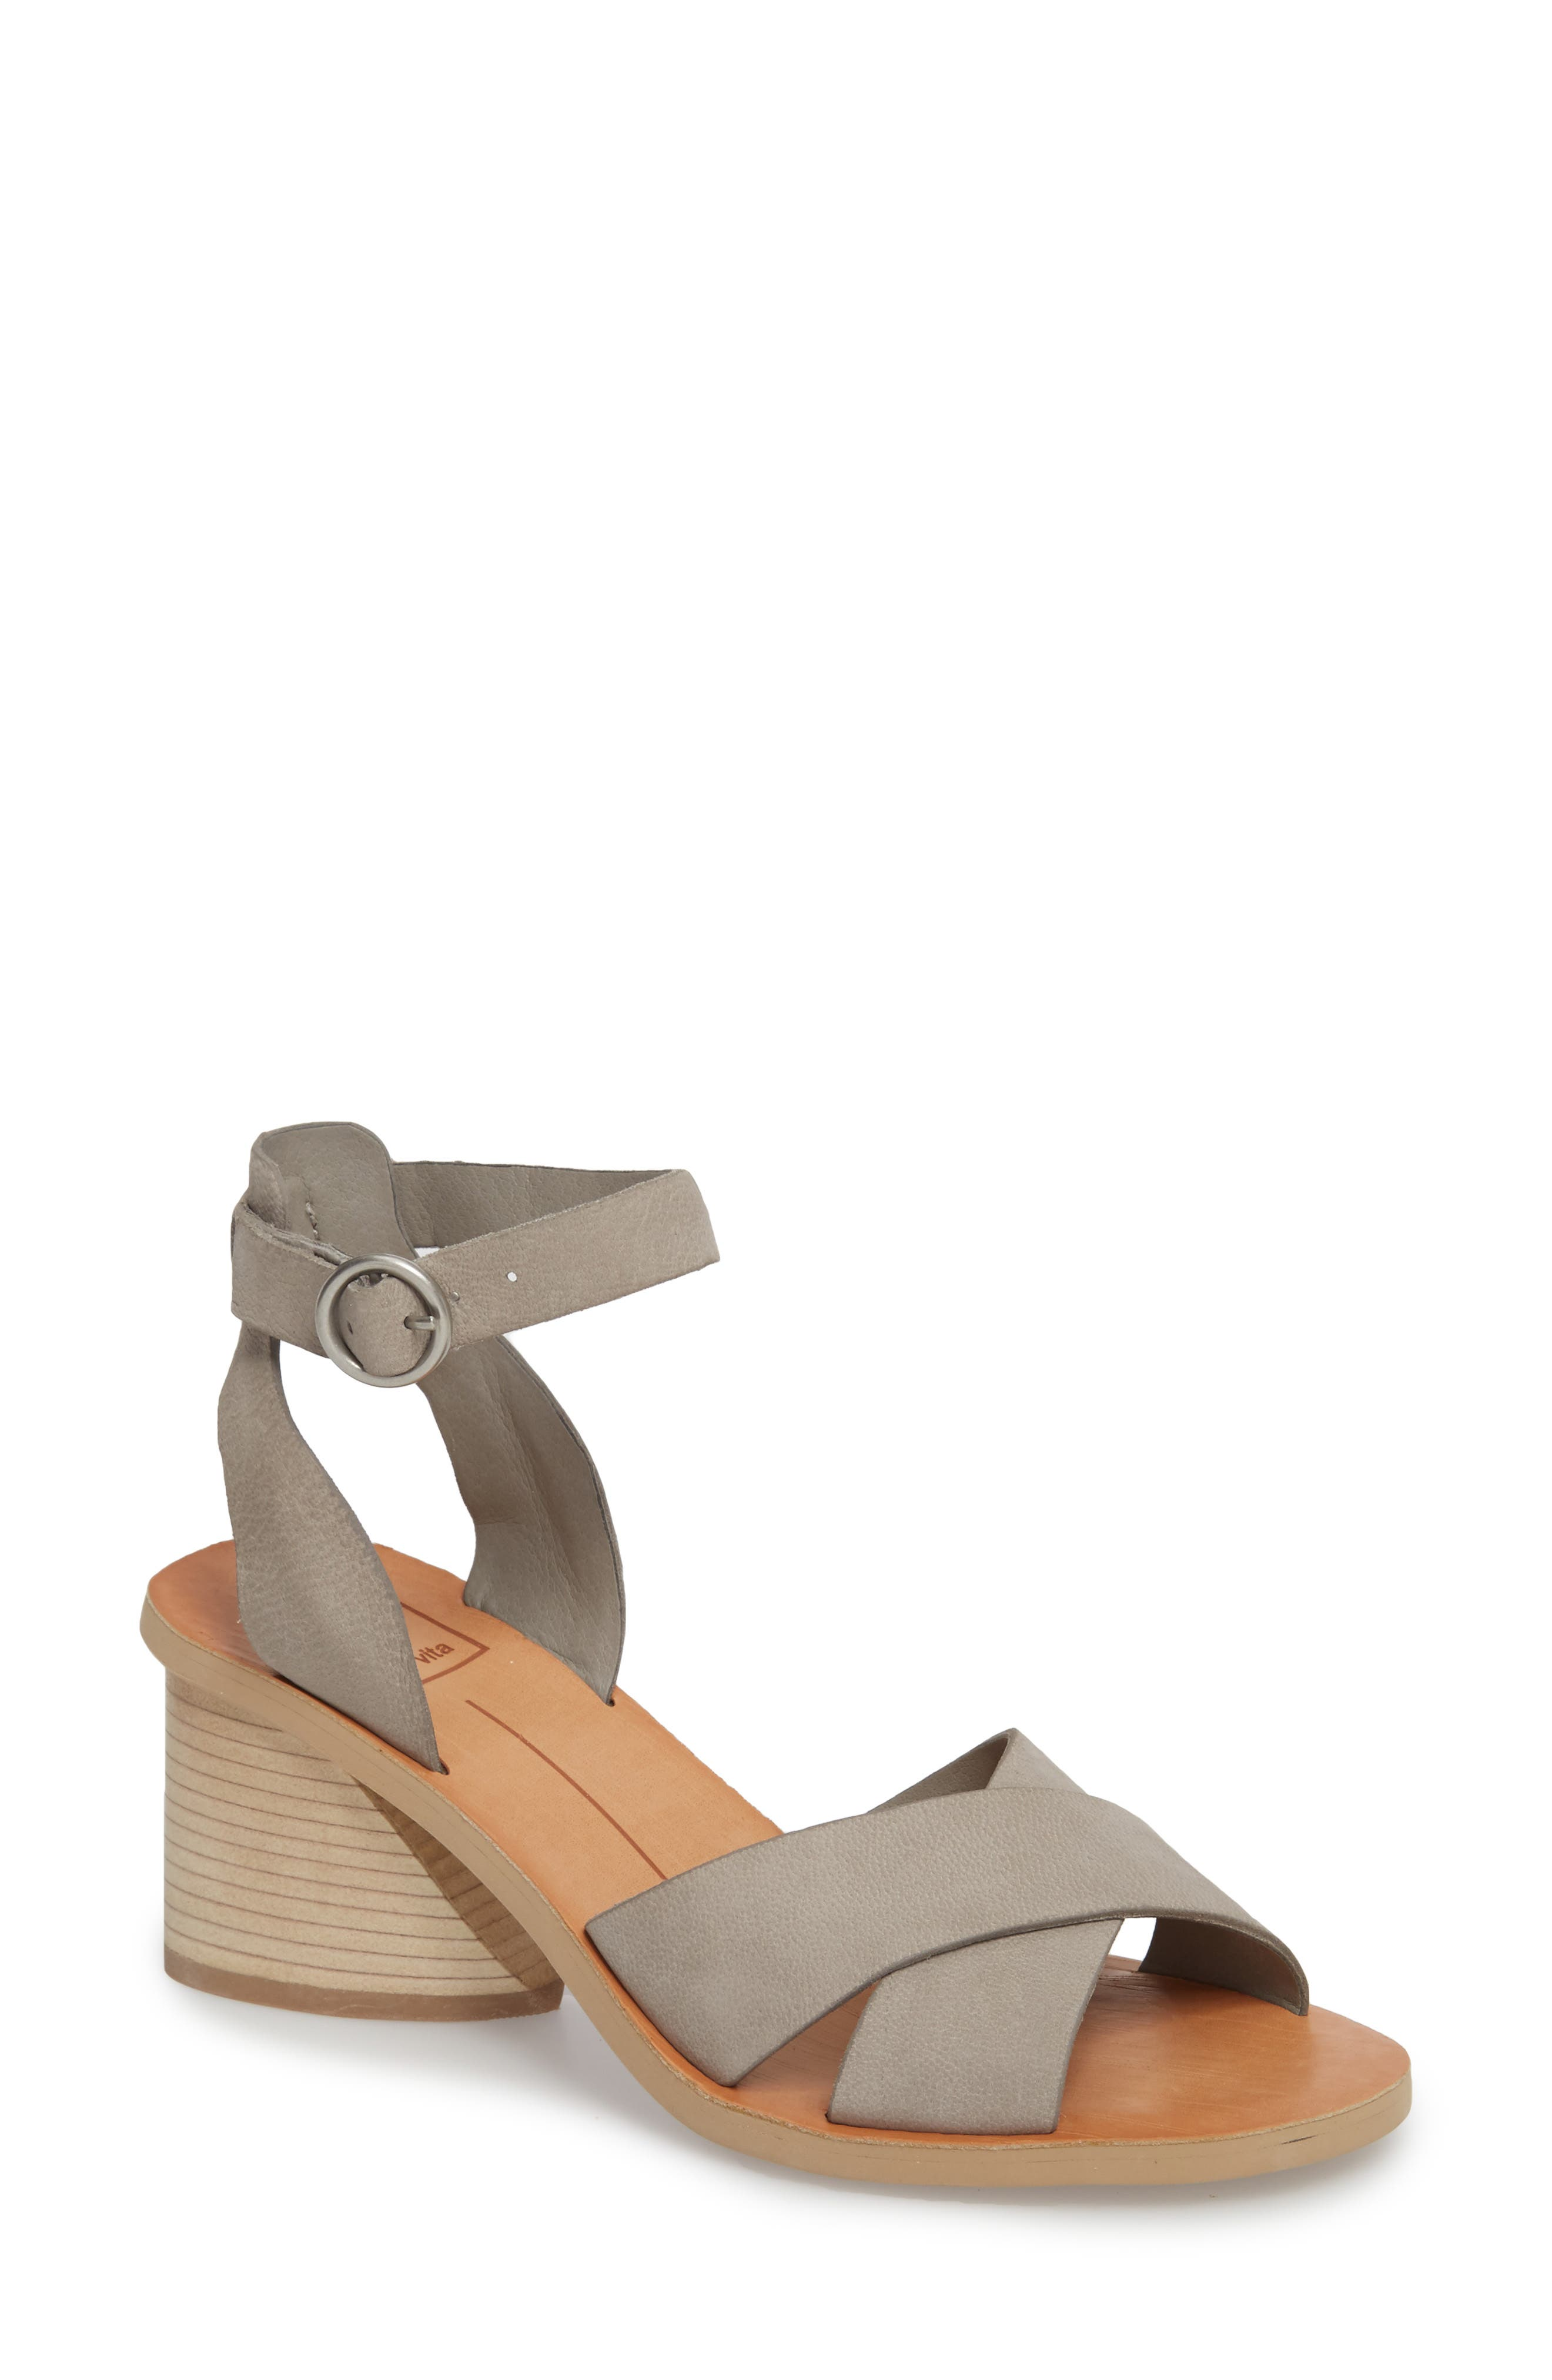 Roman Flared Heel Sandal,                             Main thumbnail 1, color,                             020